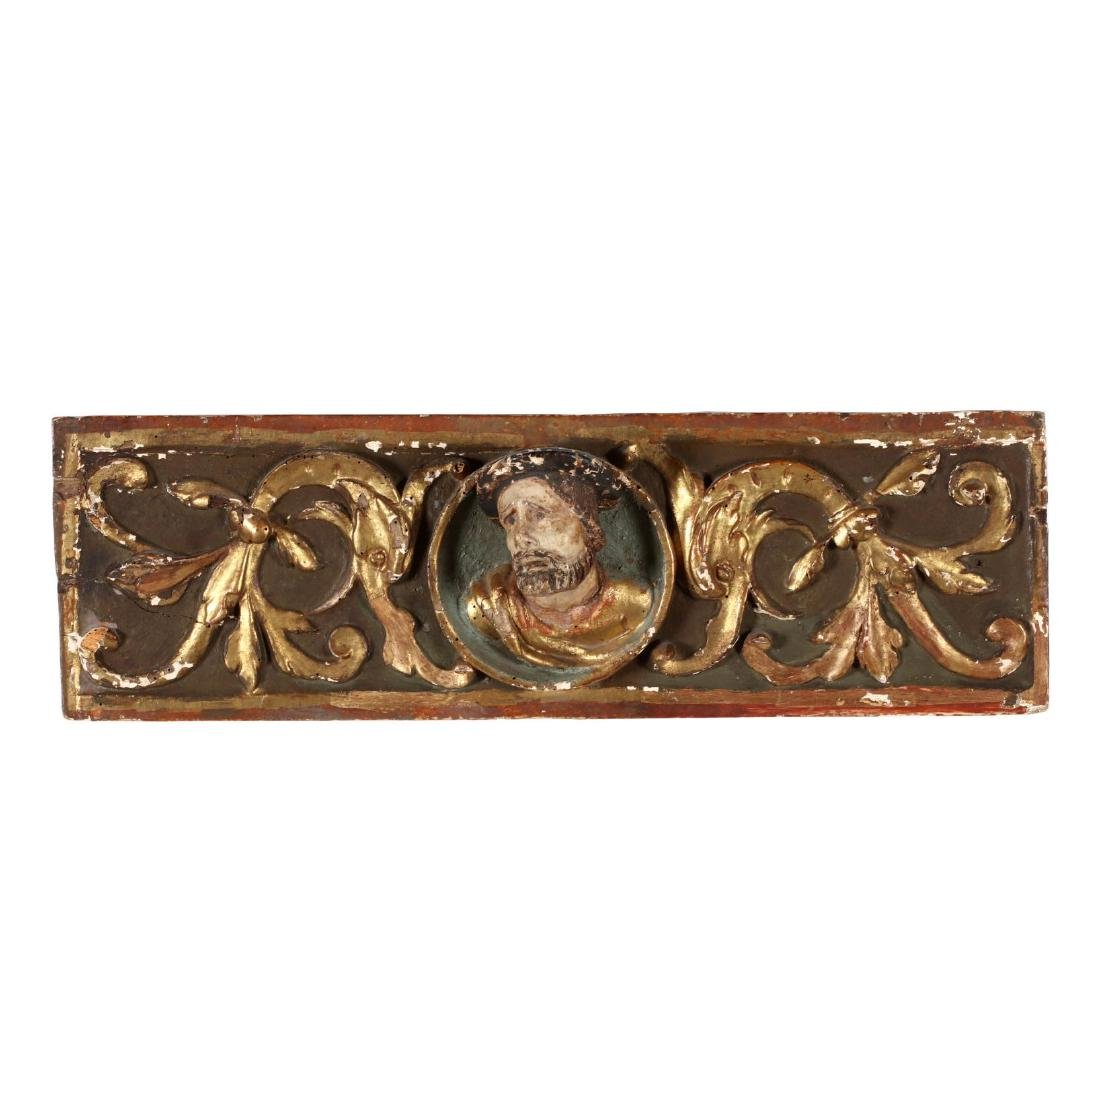 Antique Carved and Polychromed Religious Frieze